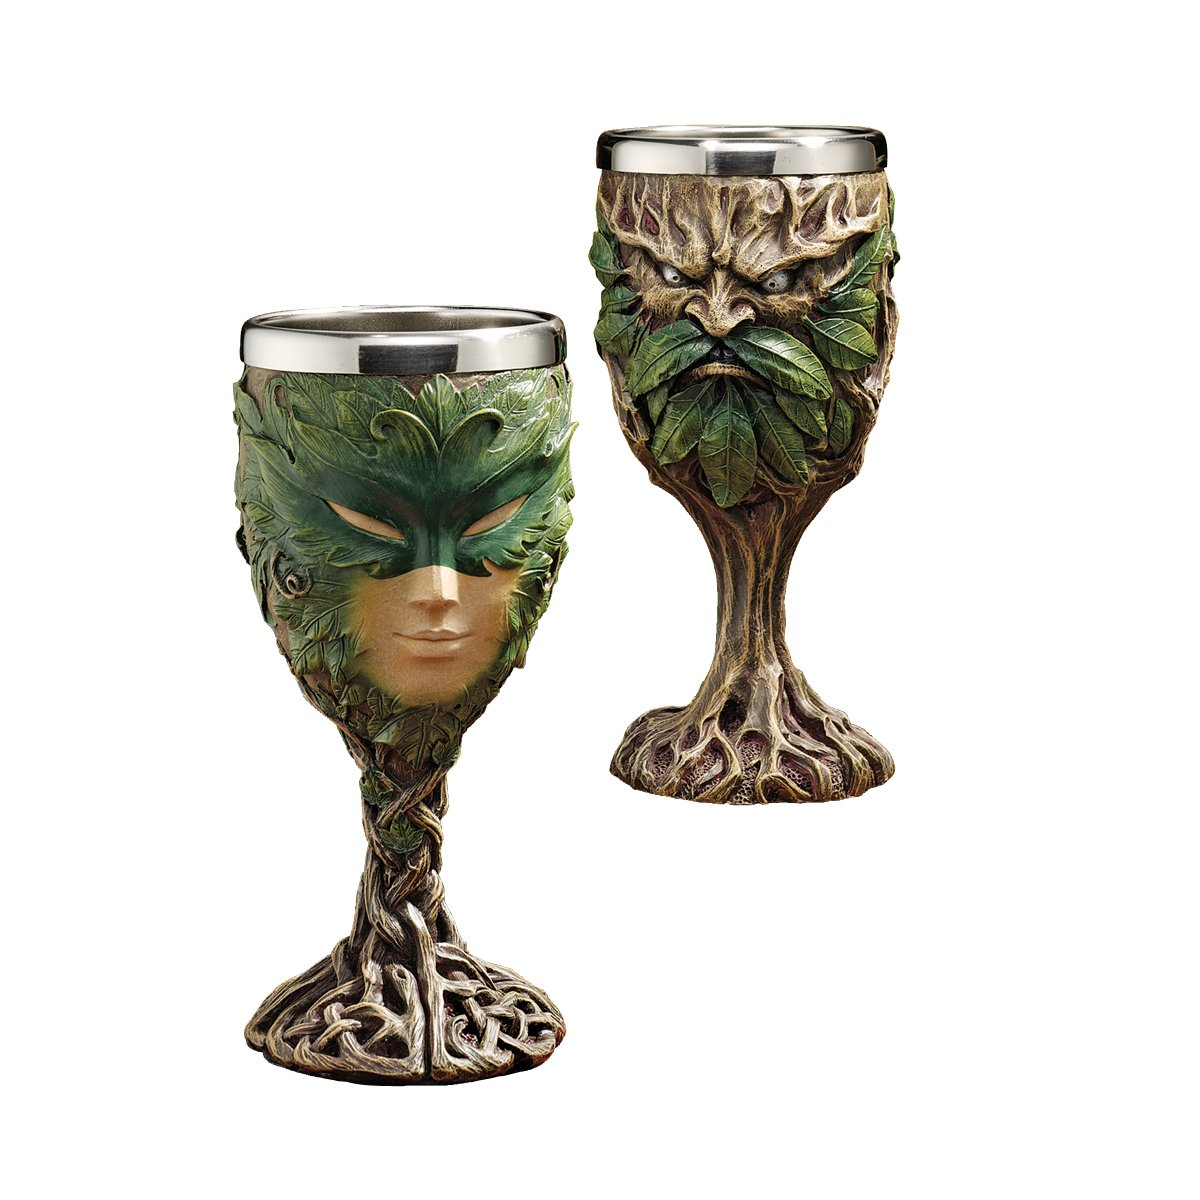 Design Toscano Forest Spirits Greenman Goblet Collection: Grendal The Green & Lady of The Leaf by Design Toscano (Image #1)